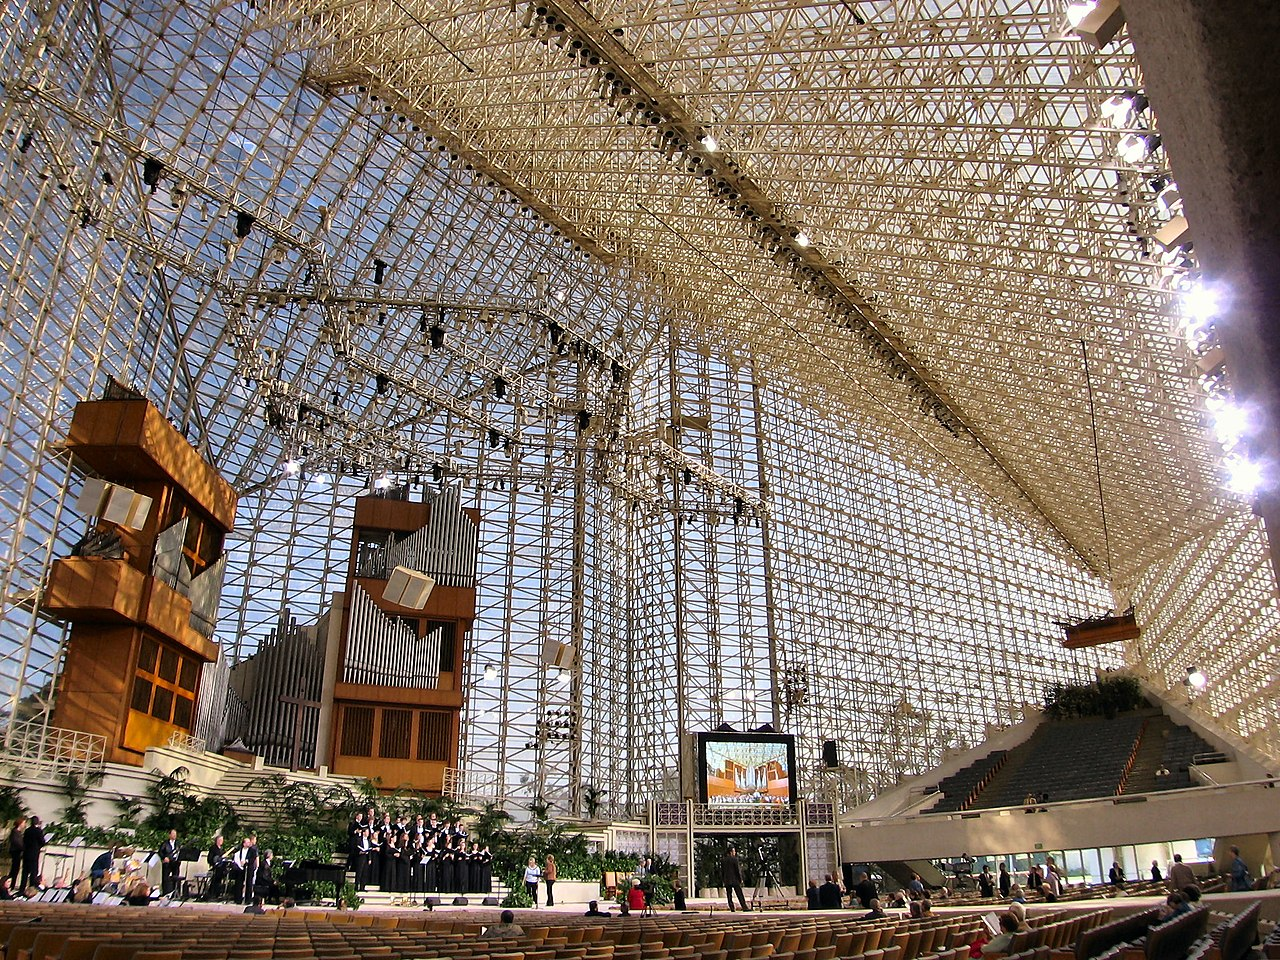 1280px-CrystalCathedral.jpg